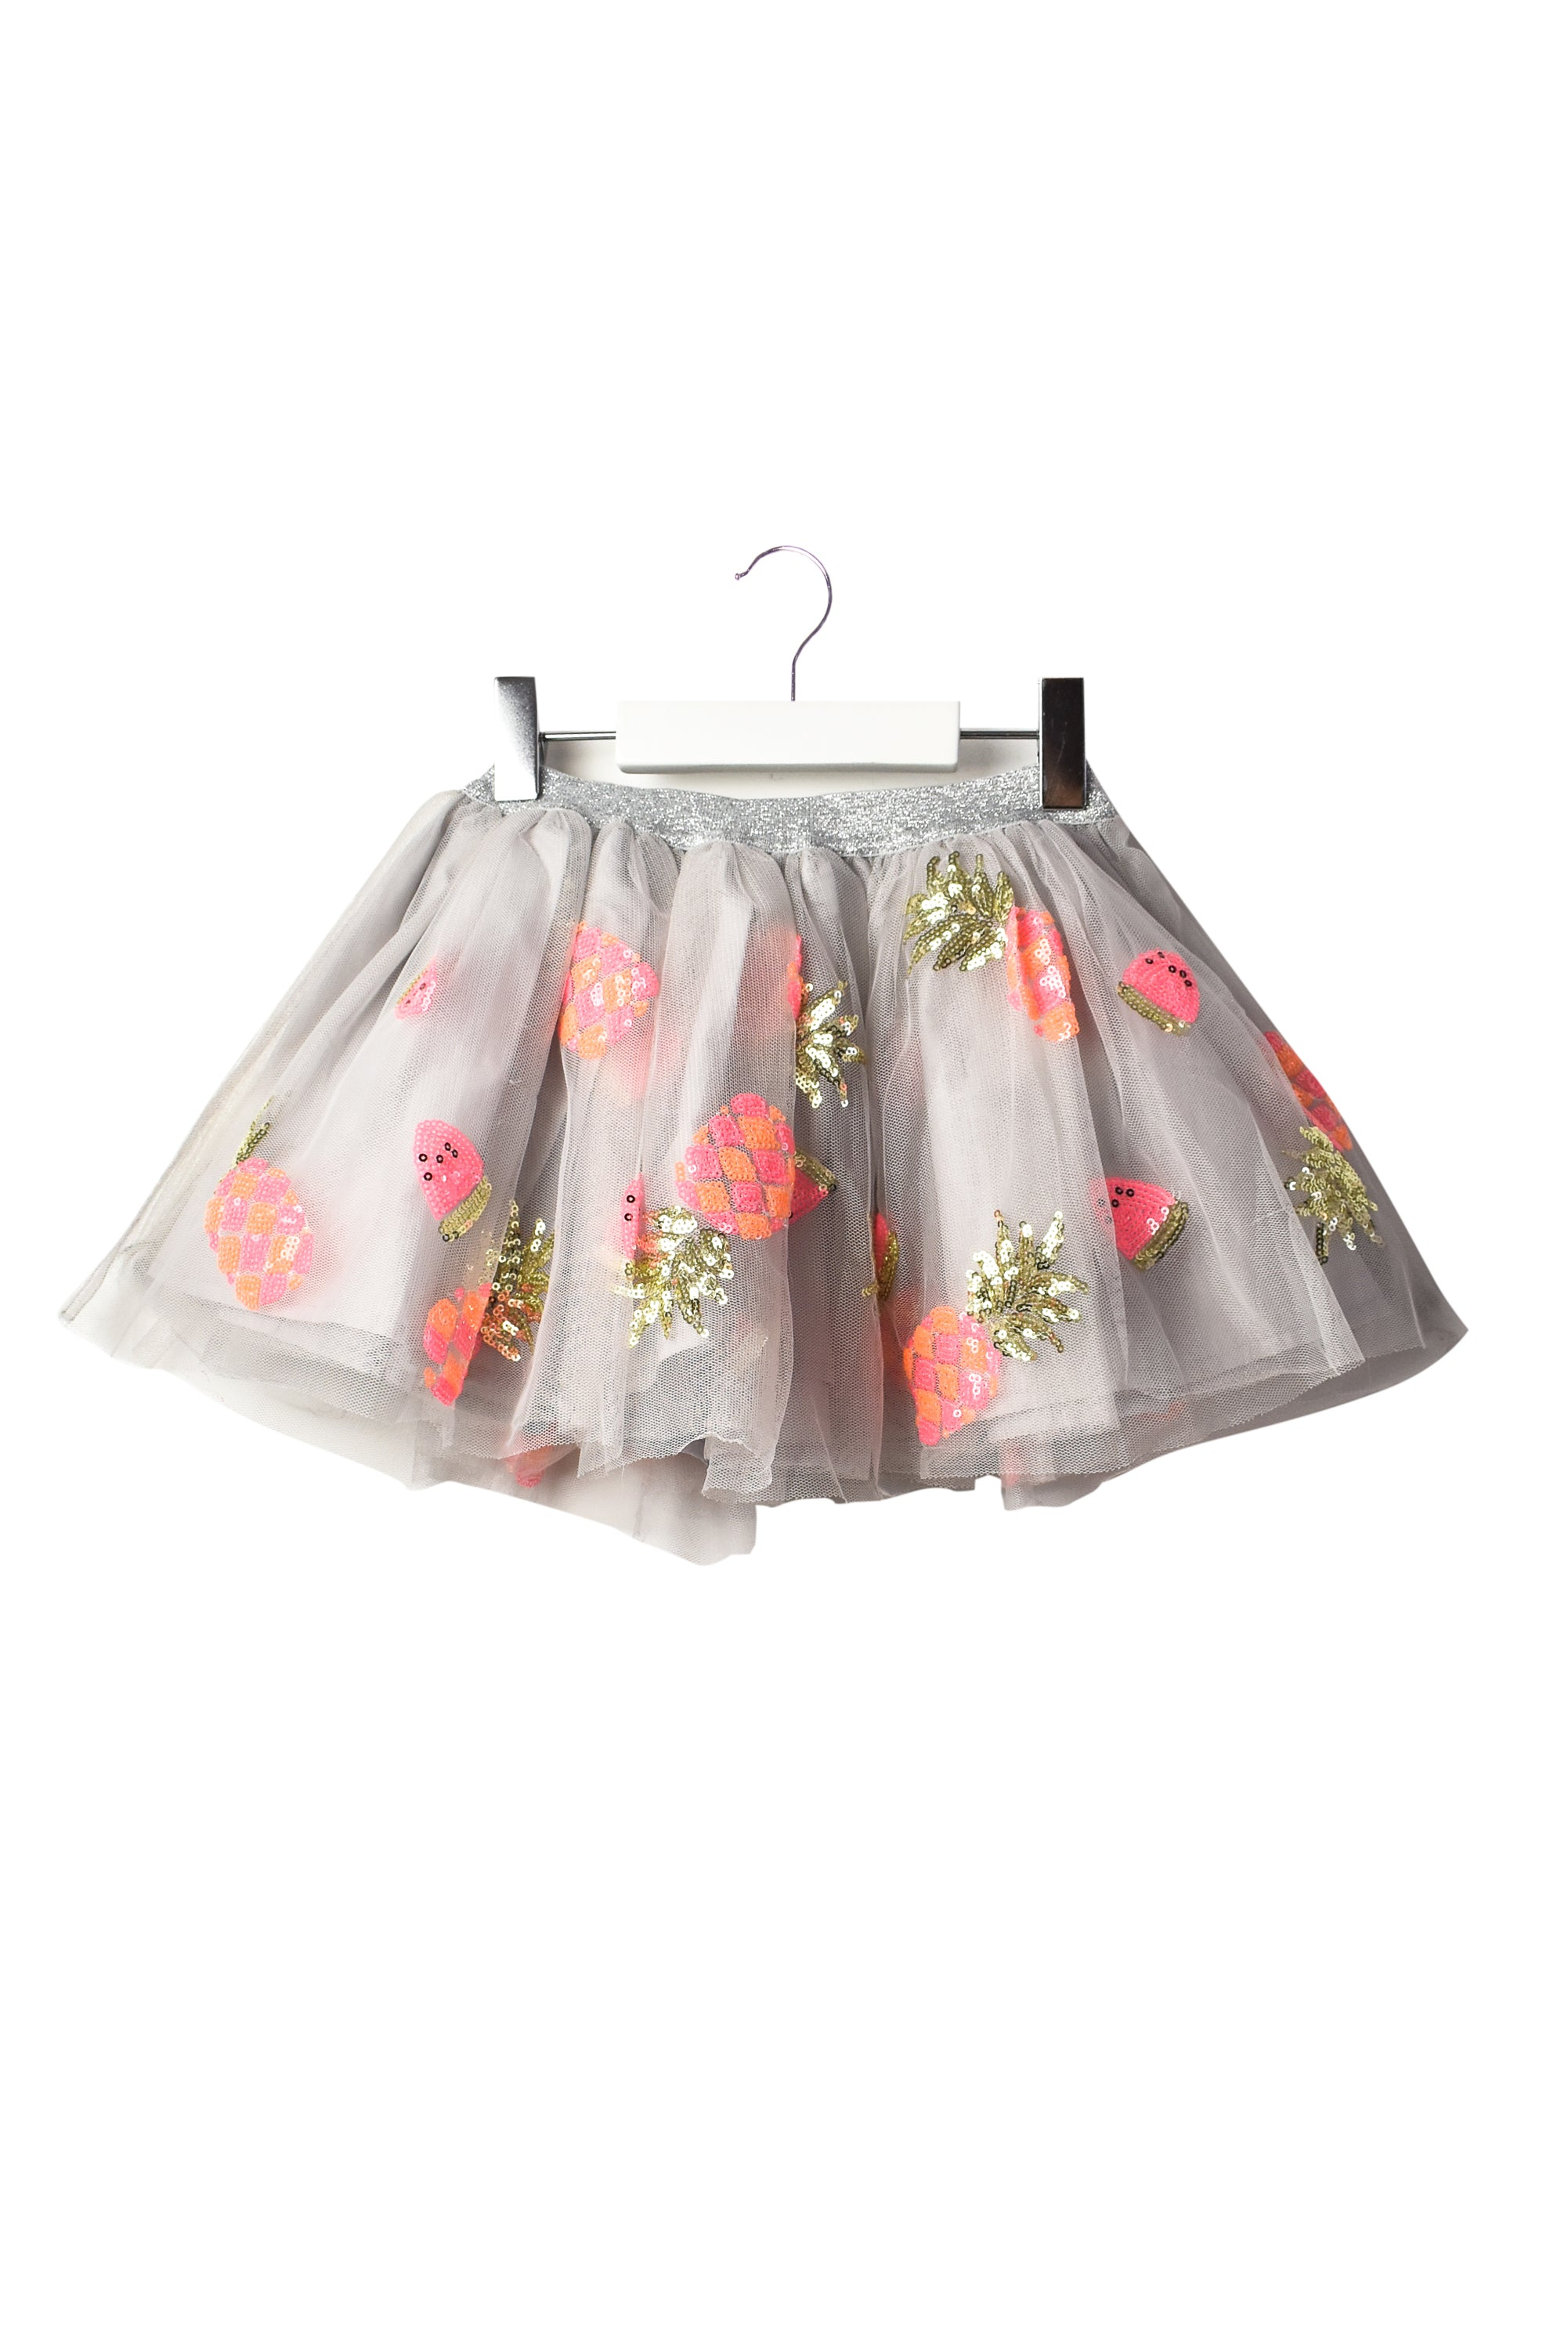 10006402 Seed Kids~Skirt 3-4T at Retykle